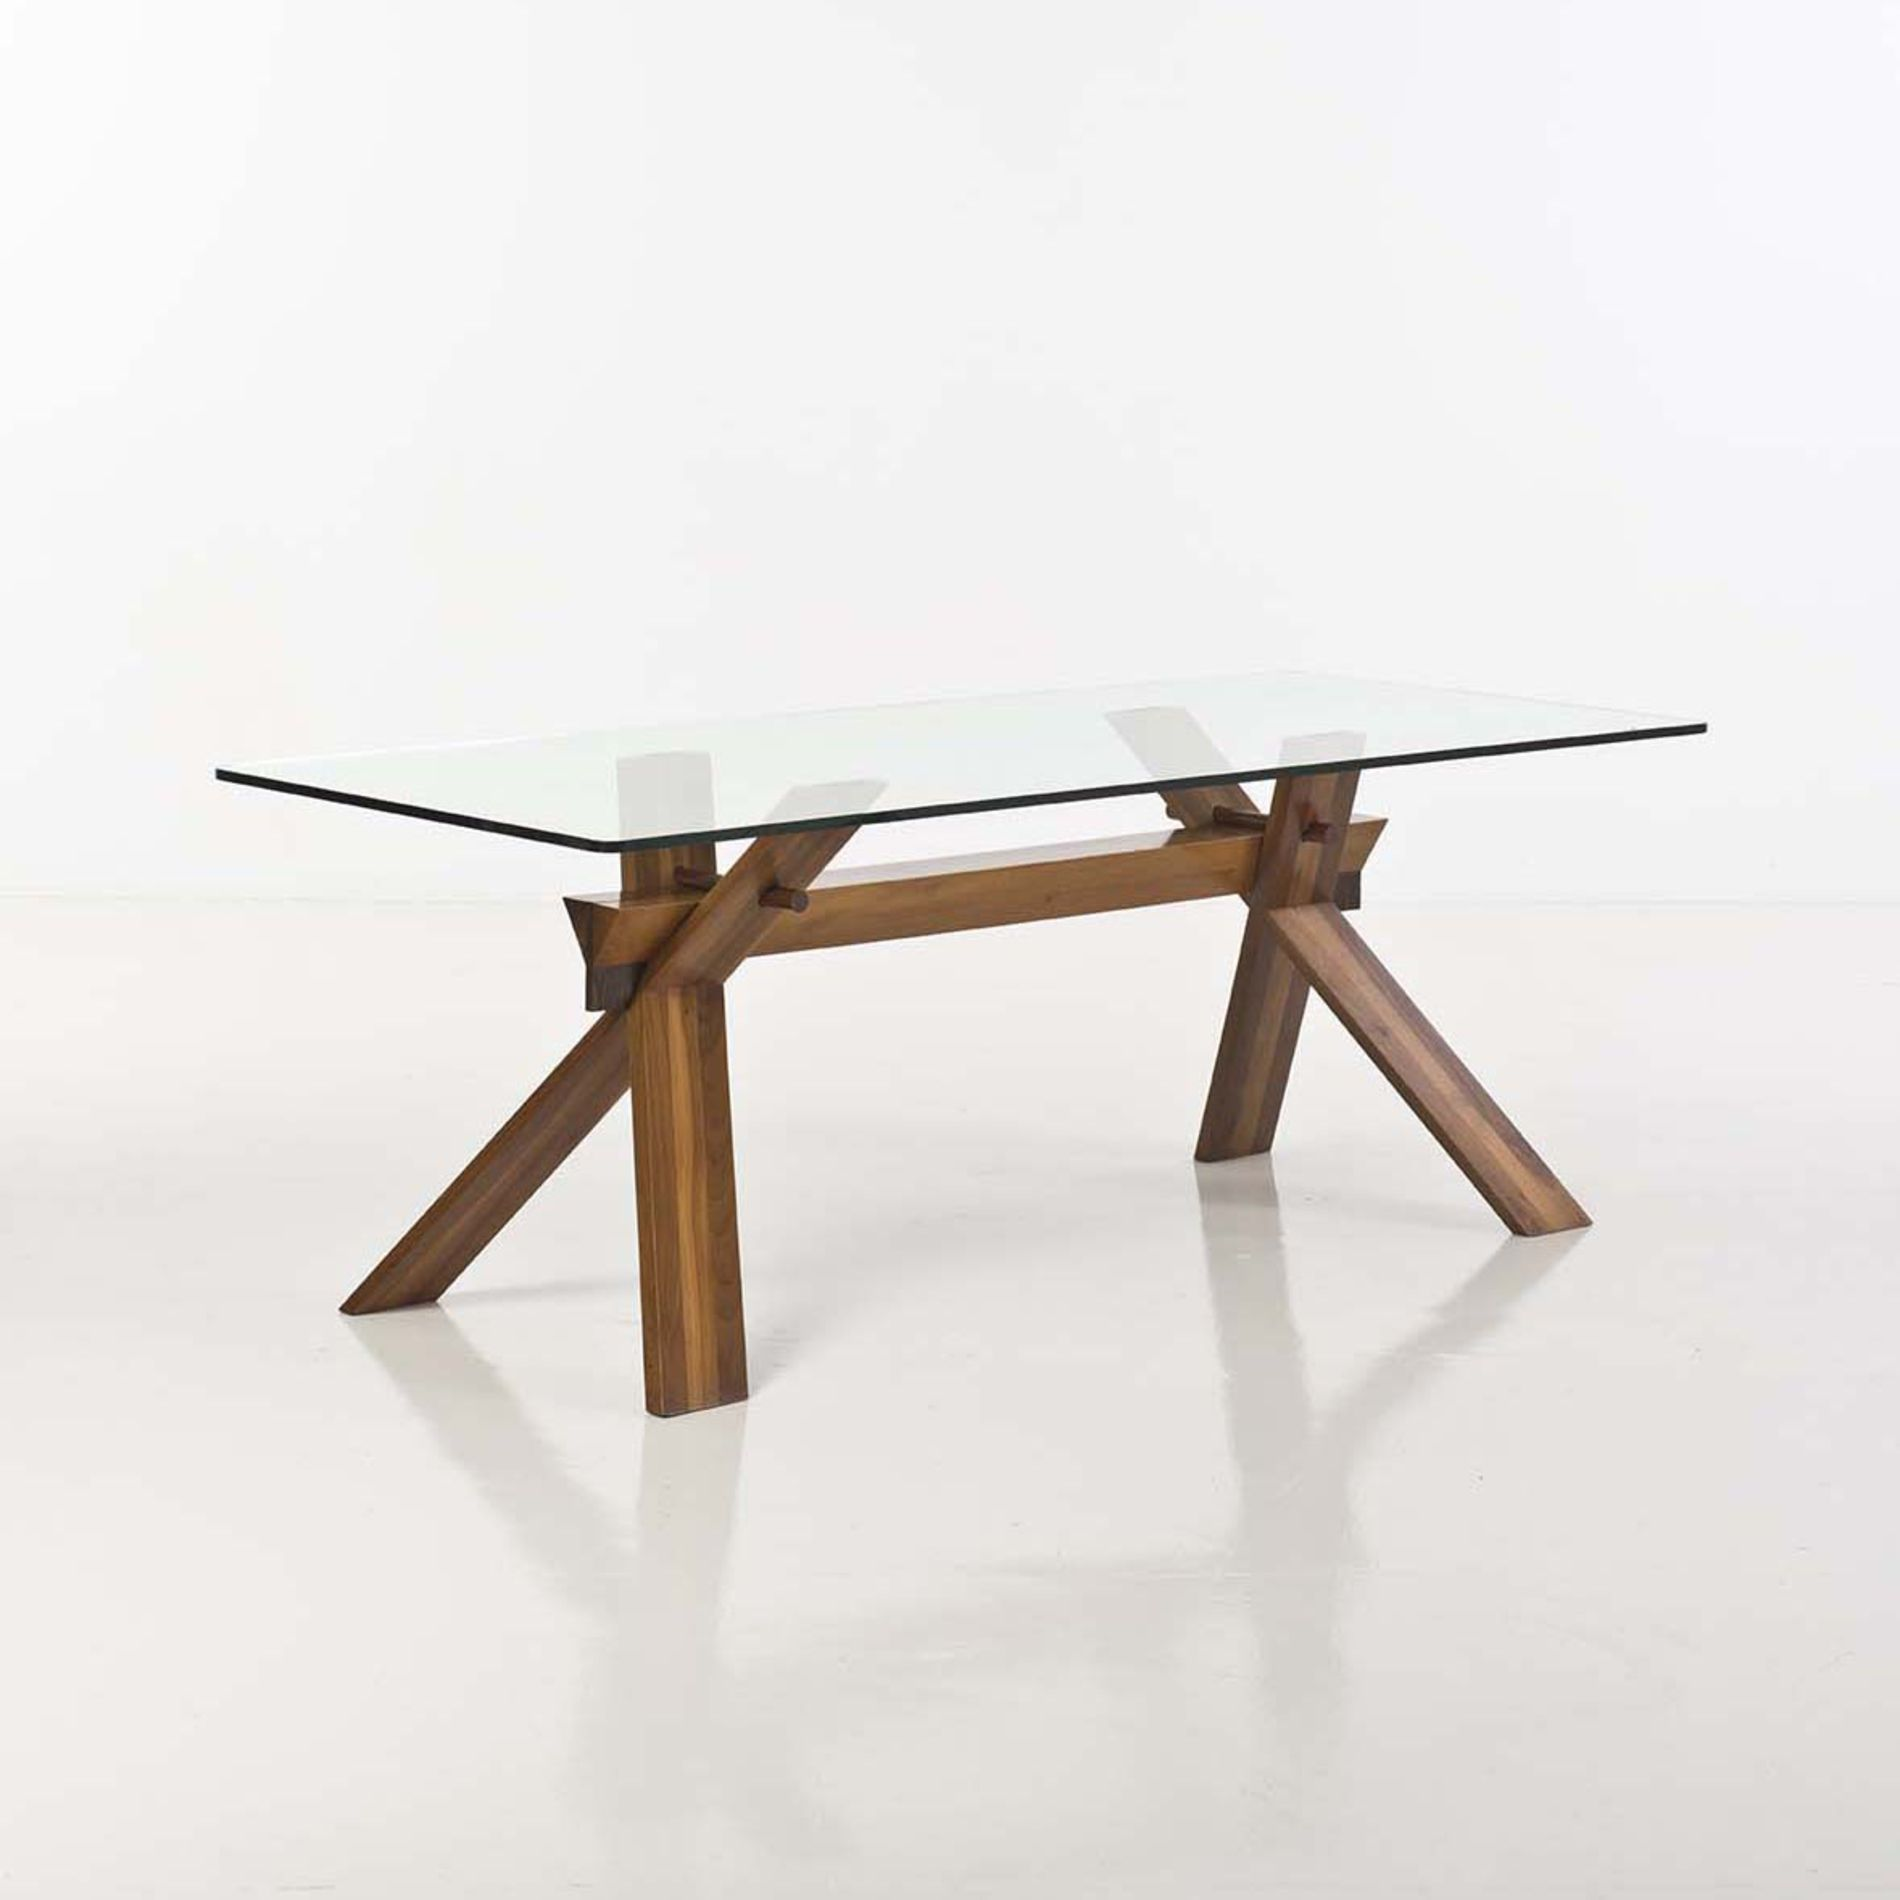 Modern Glass Kitchen Tables Lena Mid Century Dining Table West Elm 49900 Apartment